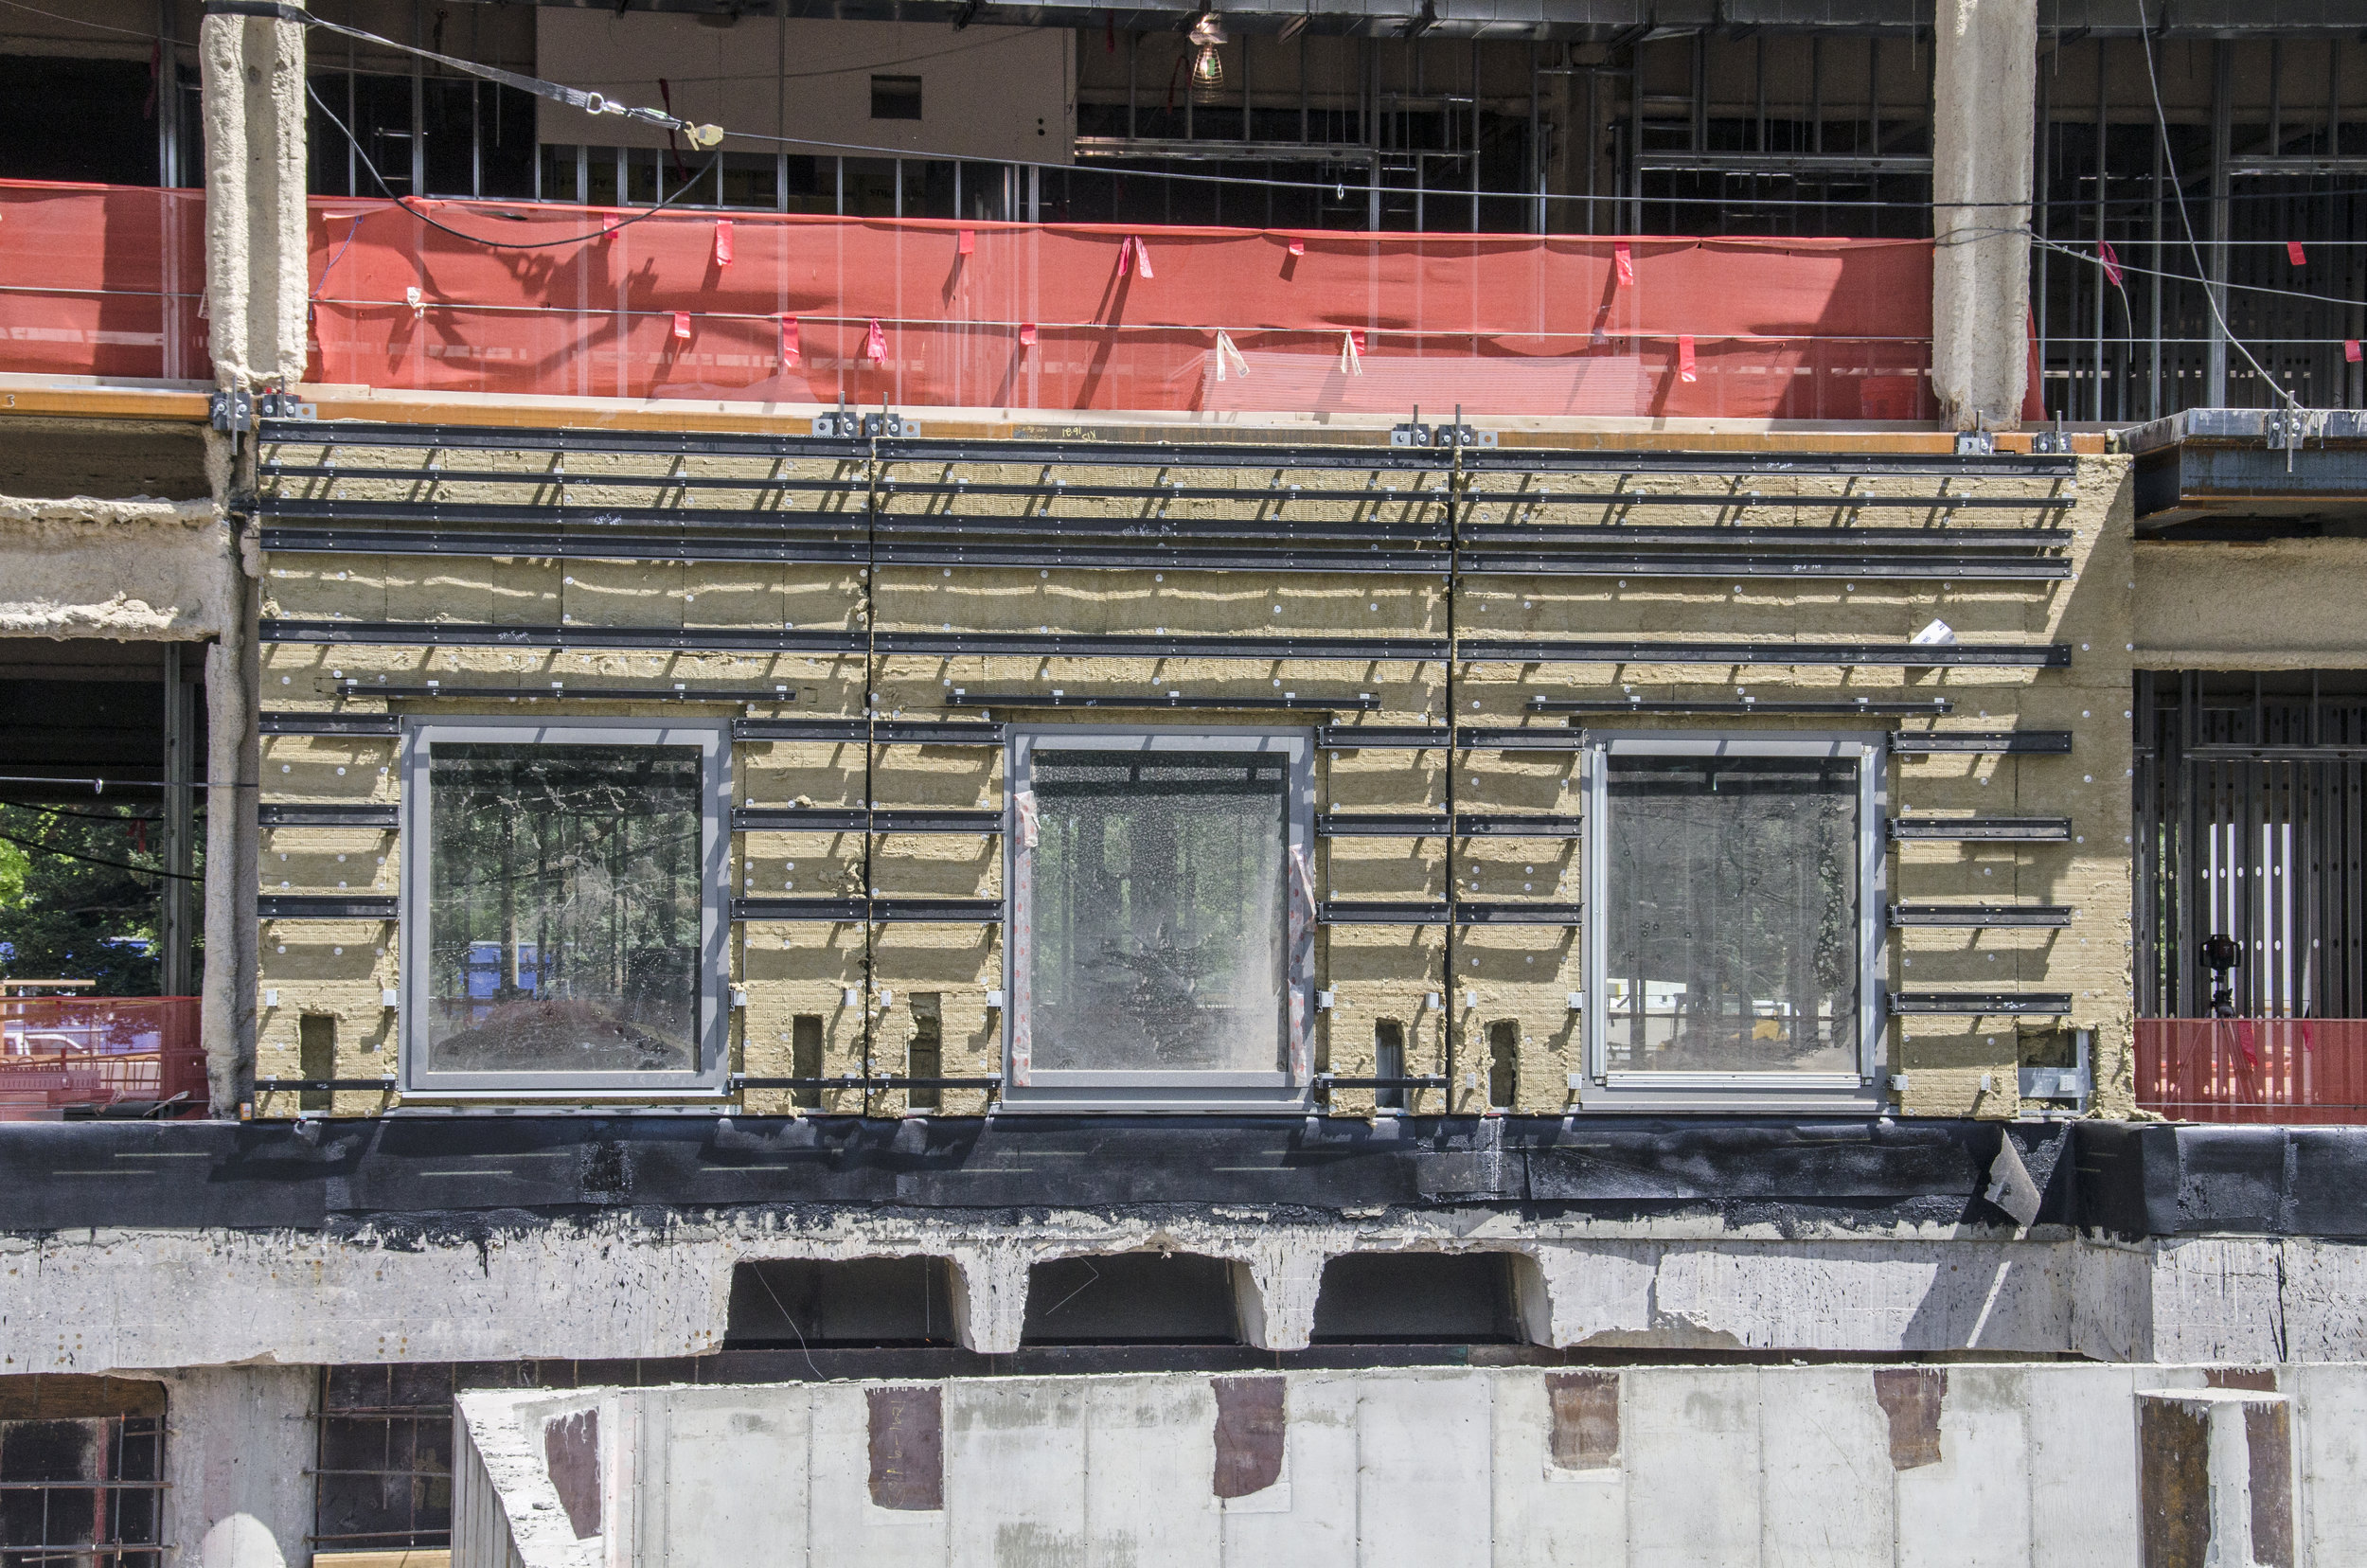 When first placed on the building, the wall panels will look unfinished with just the windows, stone support system and the tan-colored insulation in place. The stone will be installed after the wall panels are secured to the building.